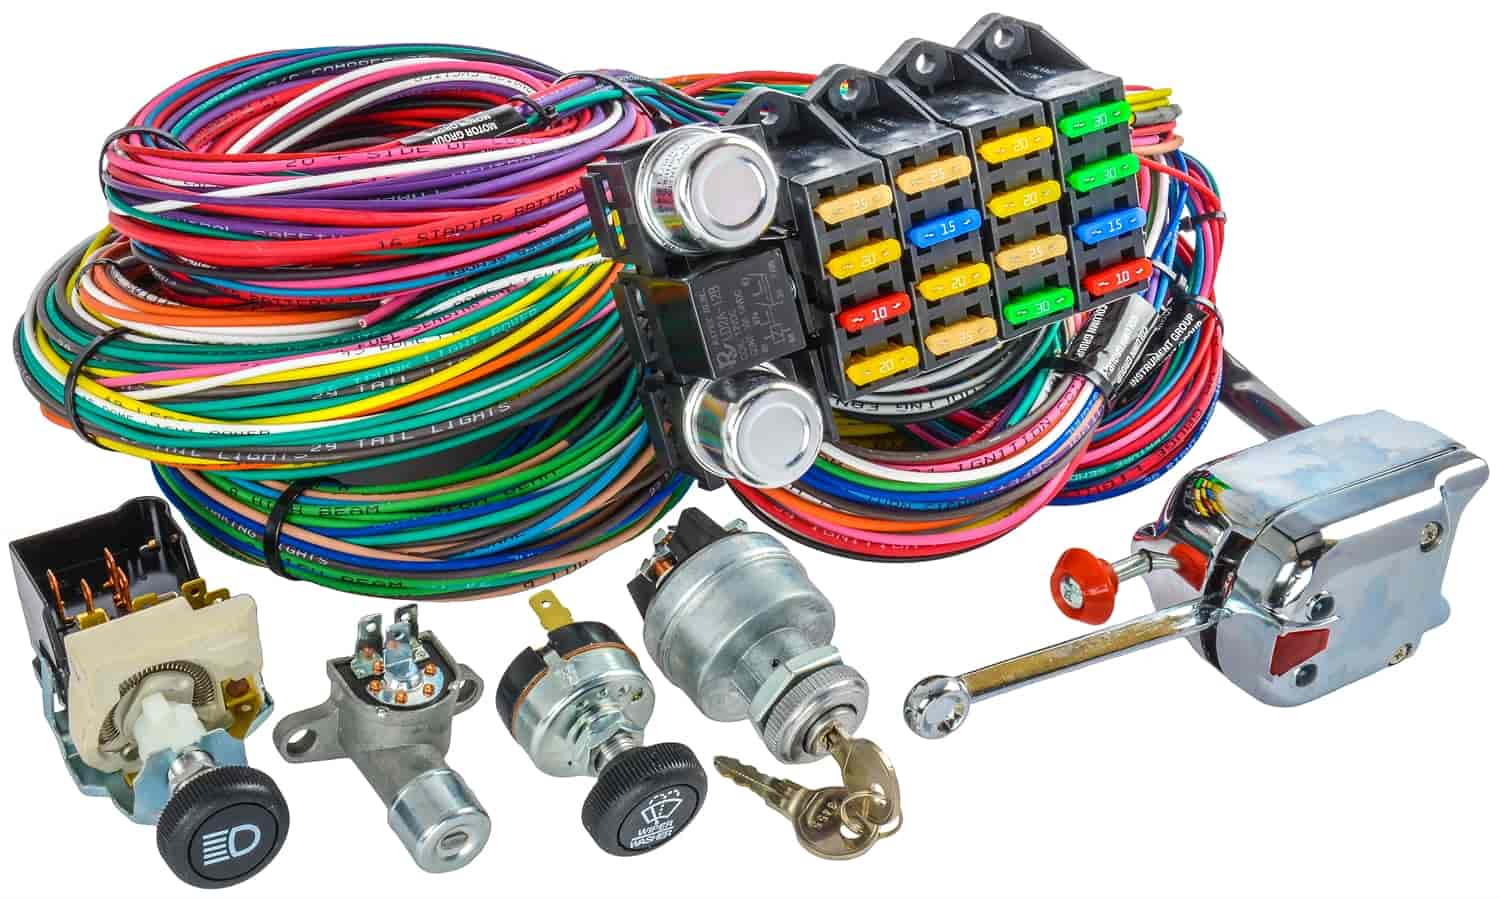 555 10405k jegs performance products 10405k universal wiring harness jegs universal wiring harness at edmiracle.co